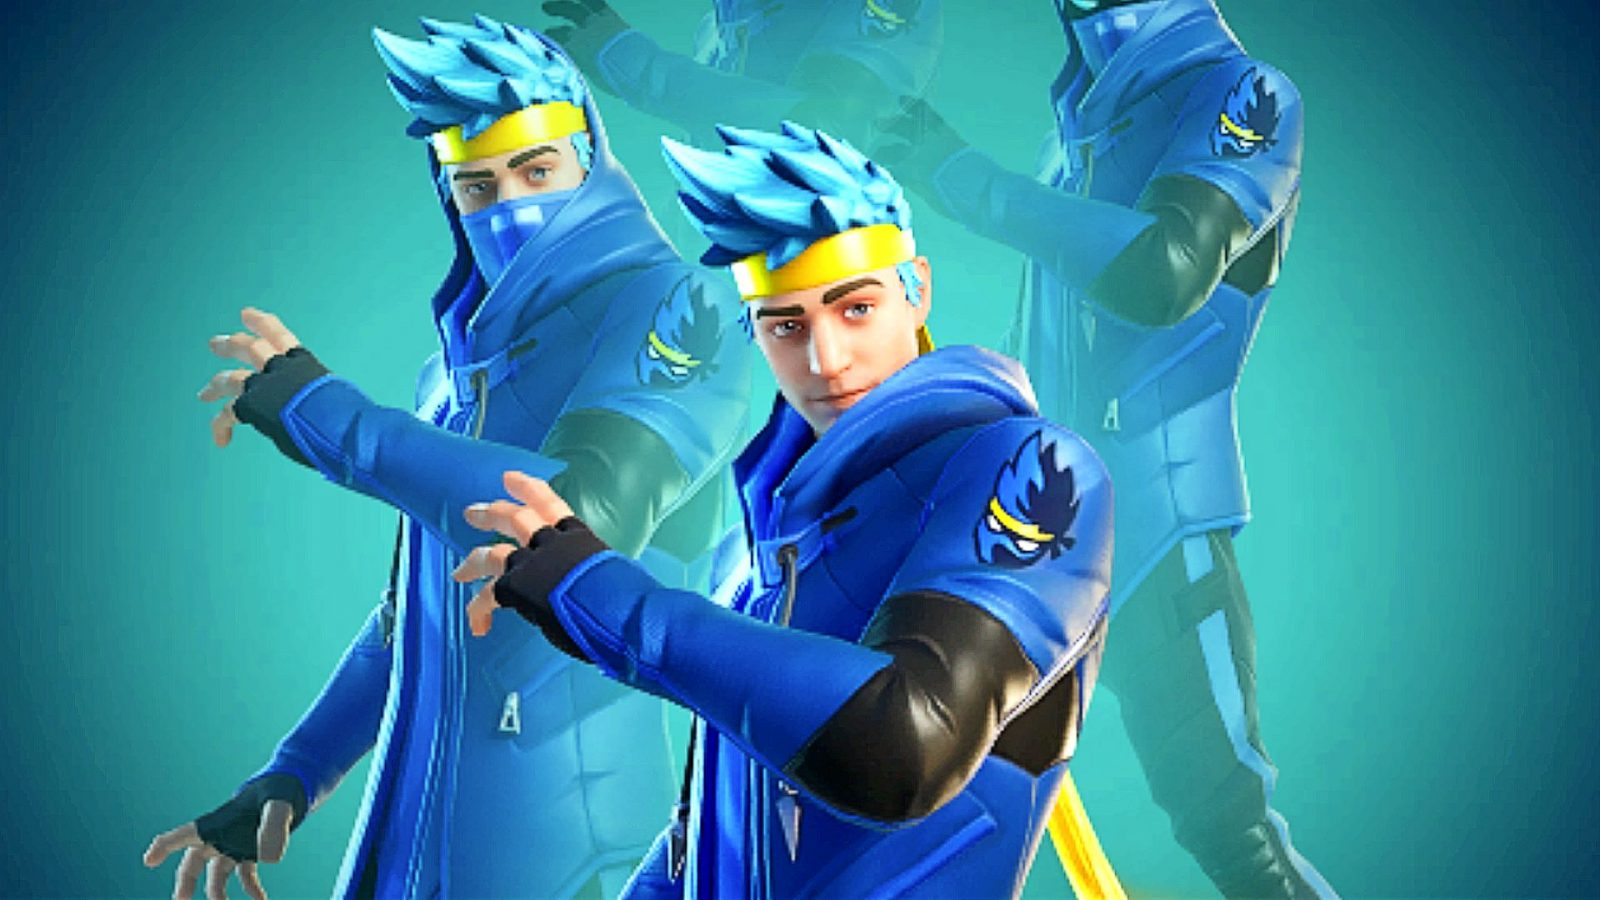 Fortnite is lastly getting an official Ninja pores and skin